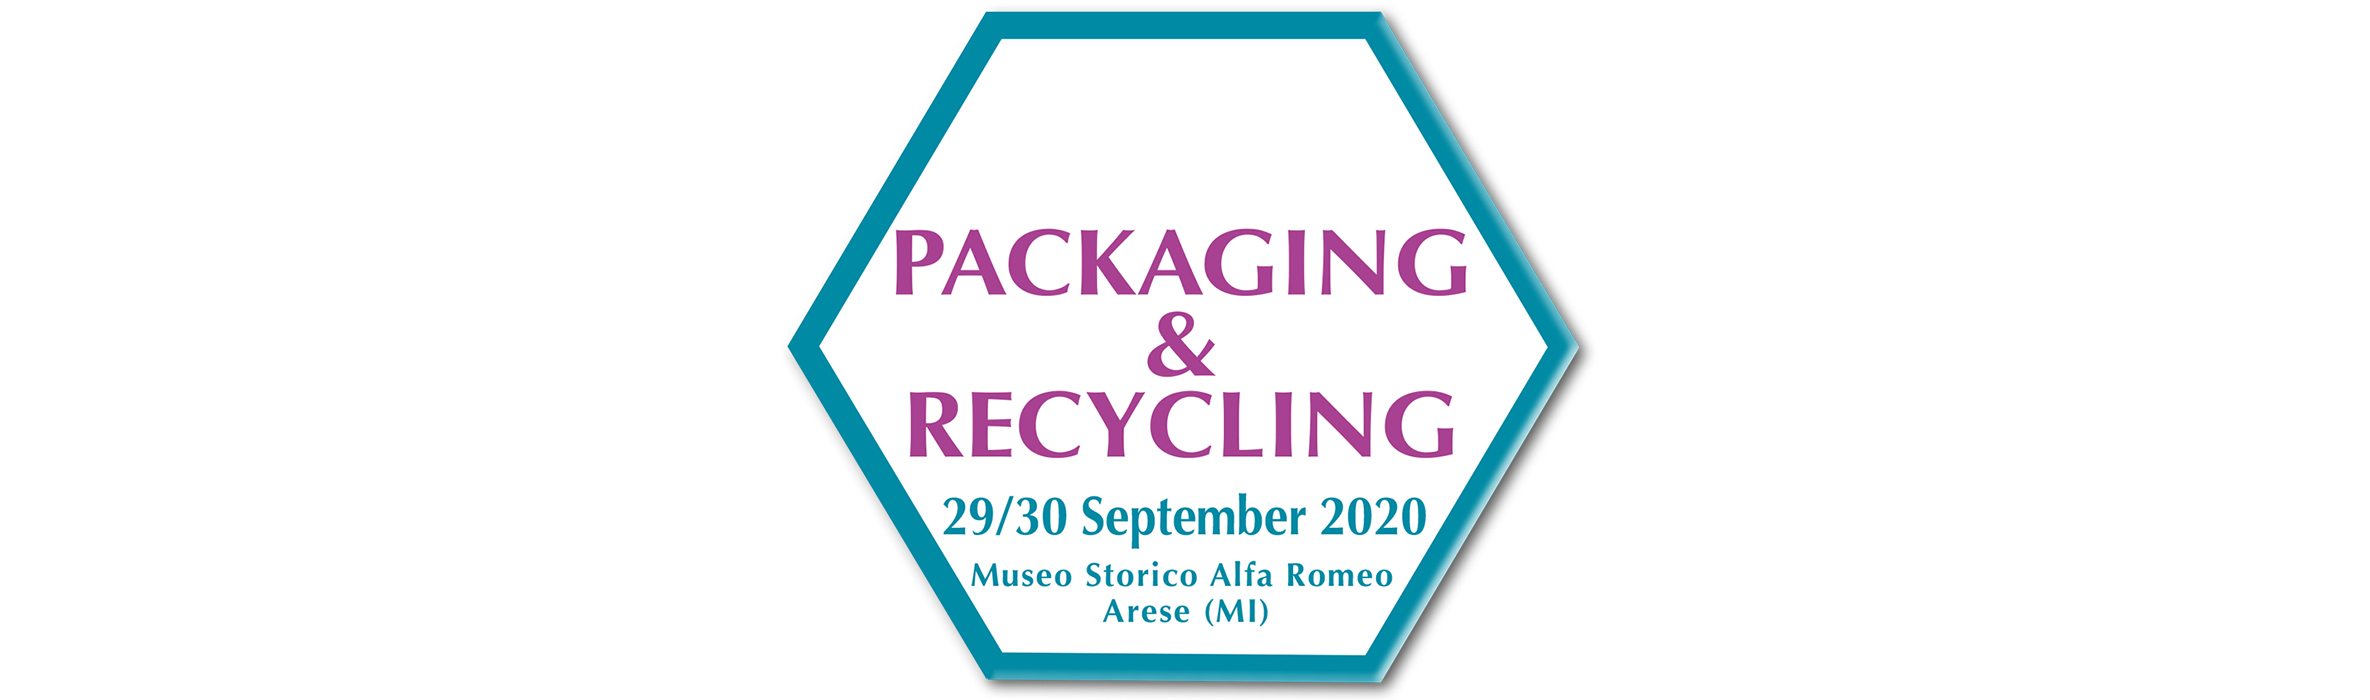 Packaging & Recycling 2020 – ARESE (ITALY)